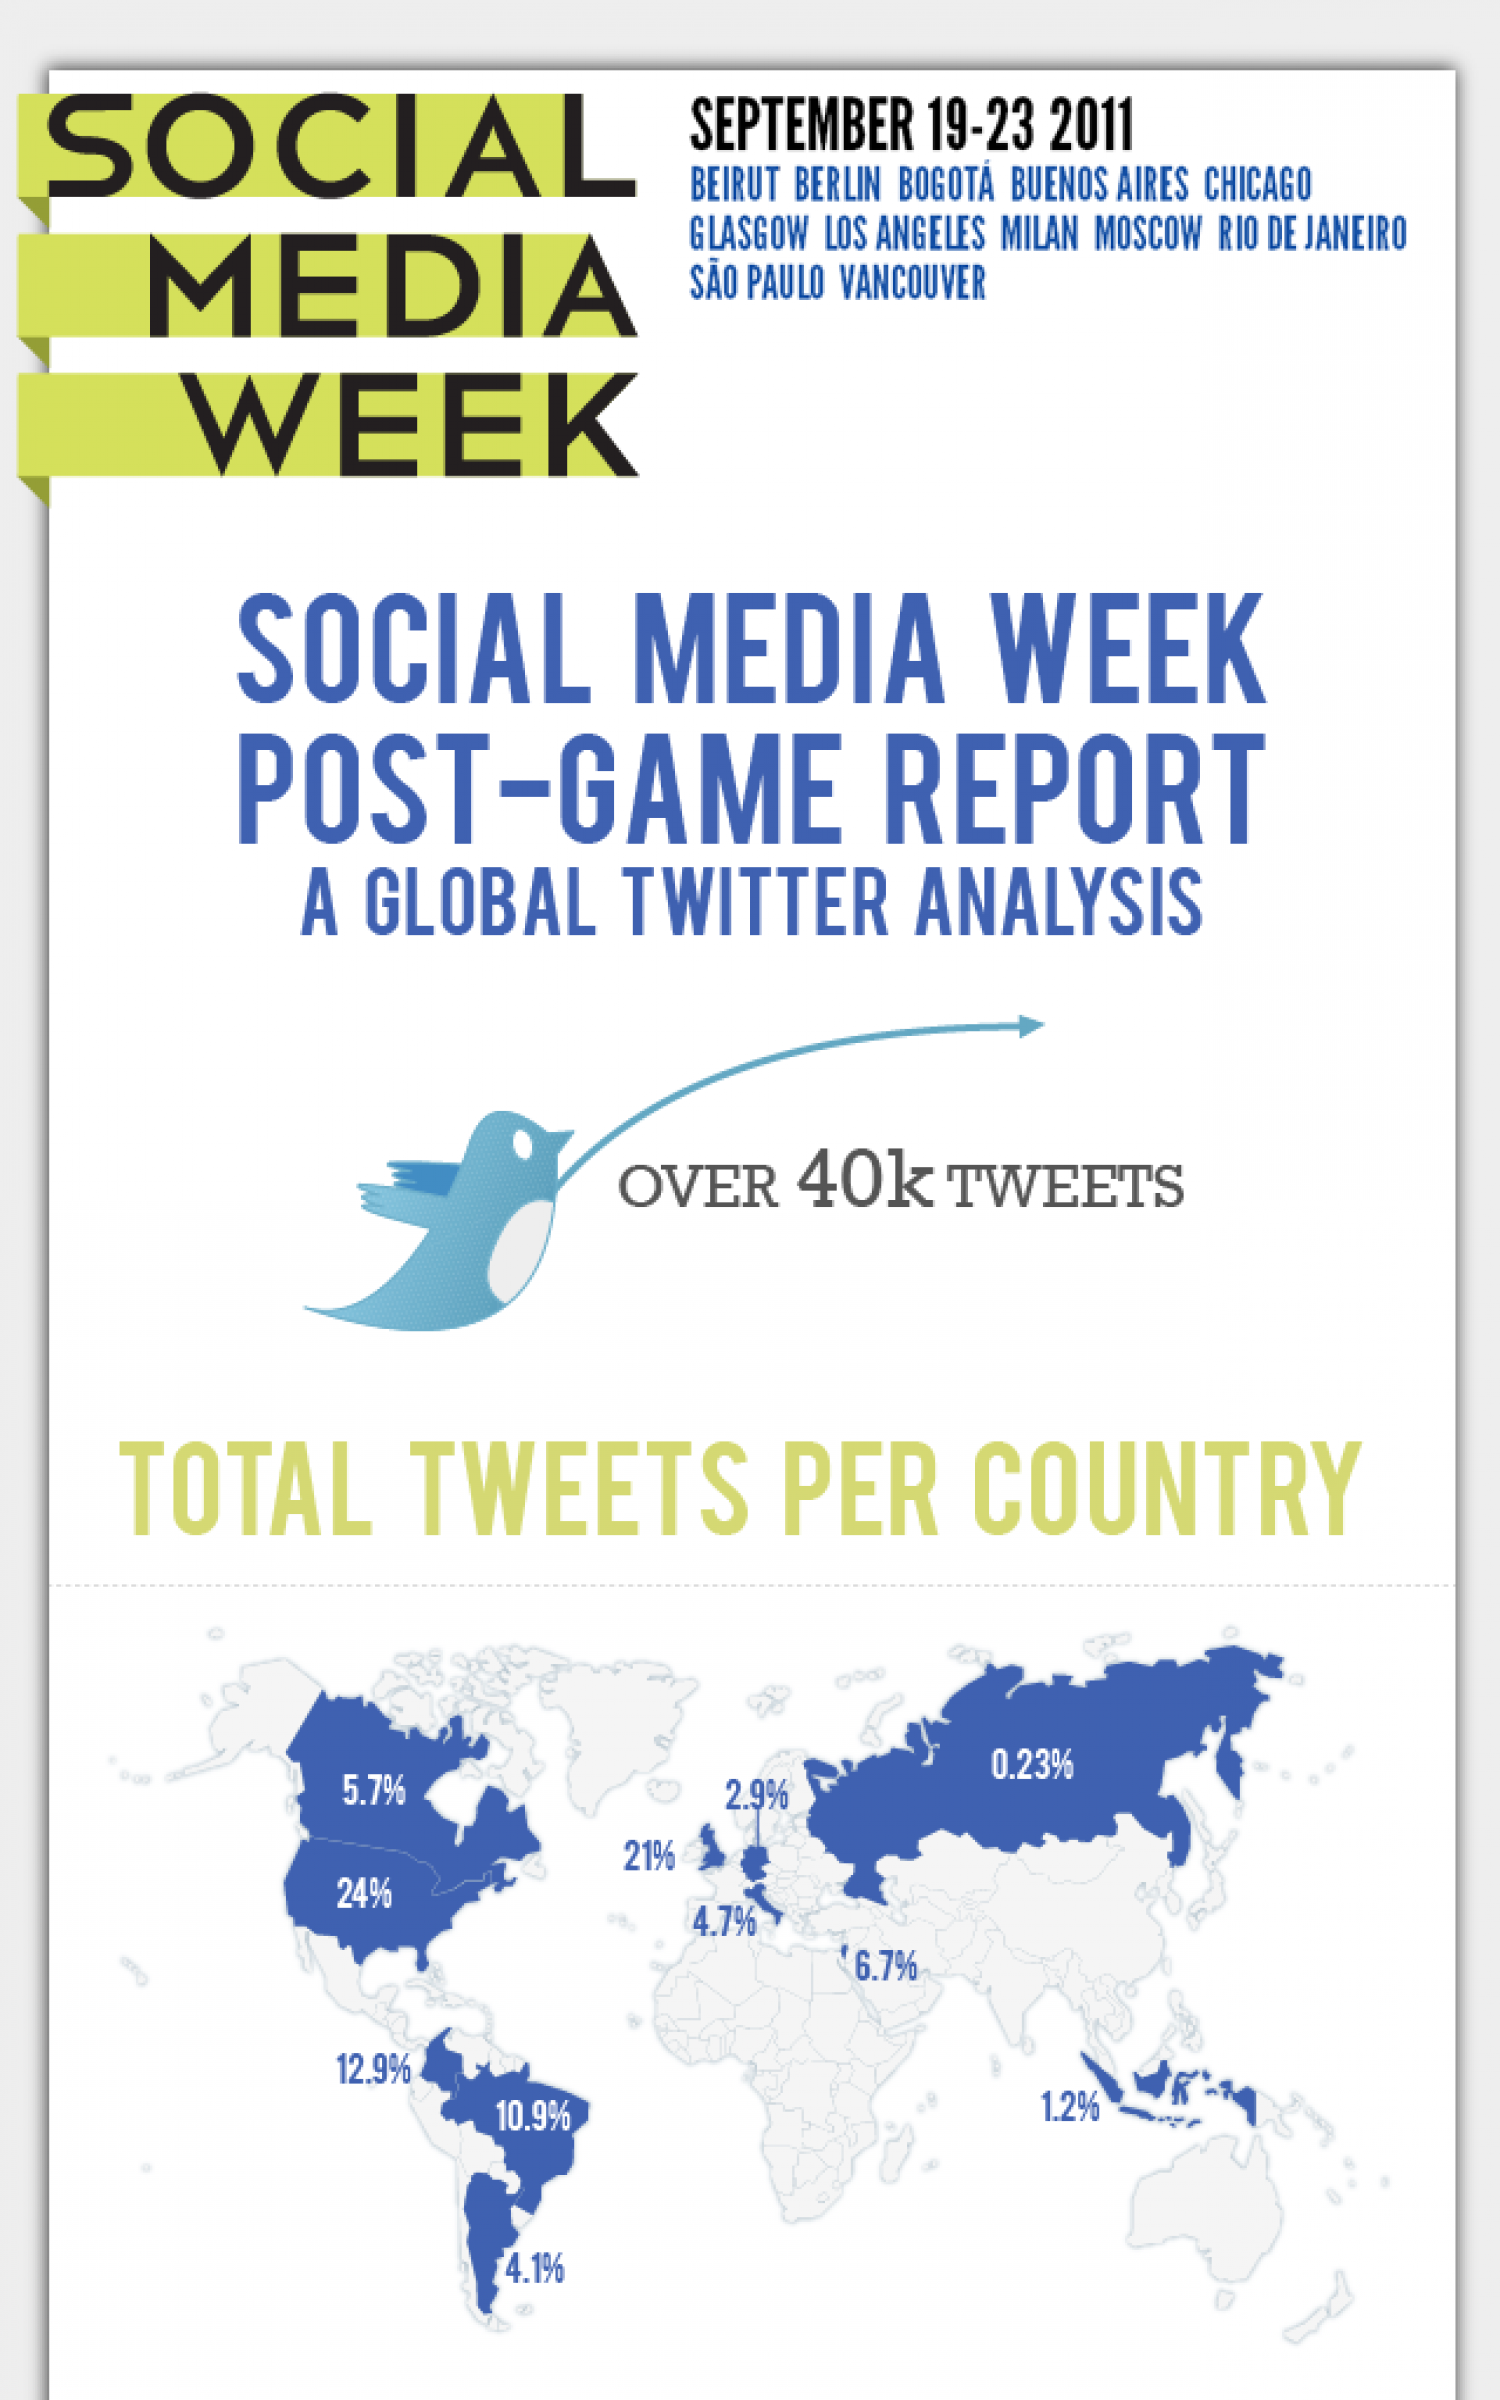 Social Media Week Global Analysis - Post-Game Report Infographic